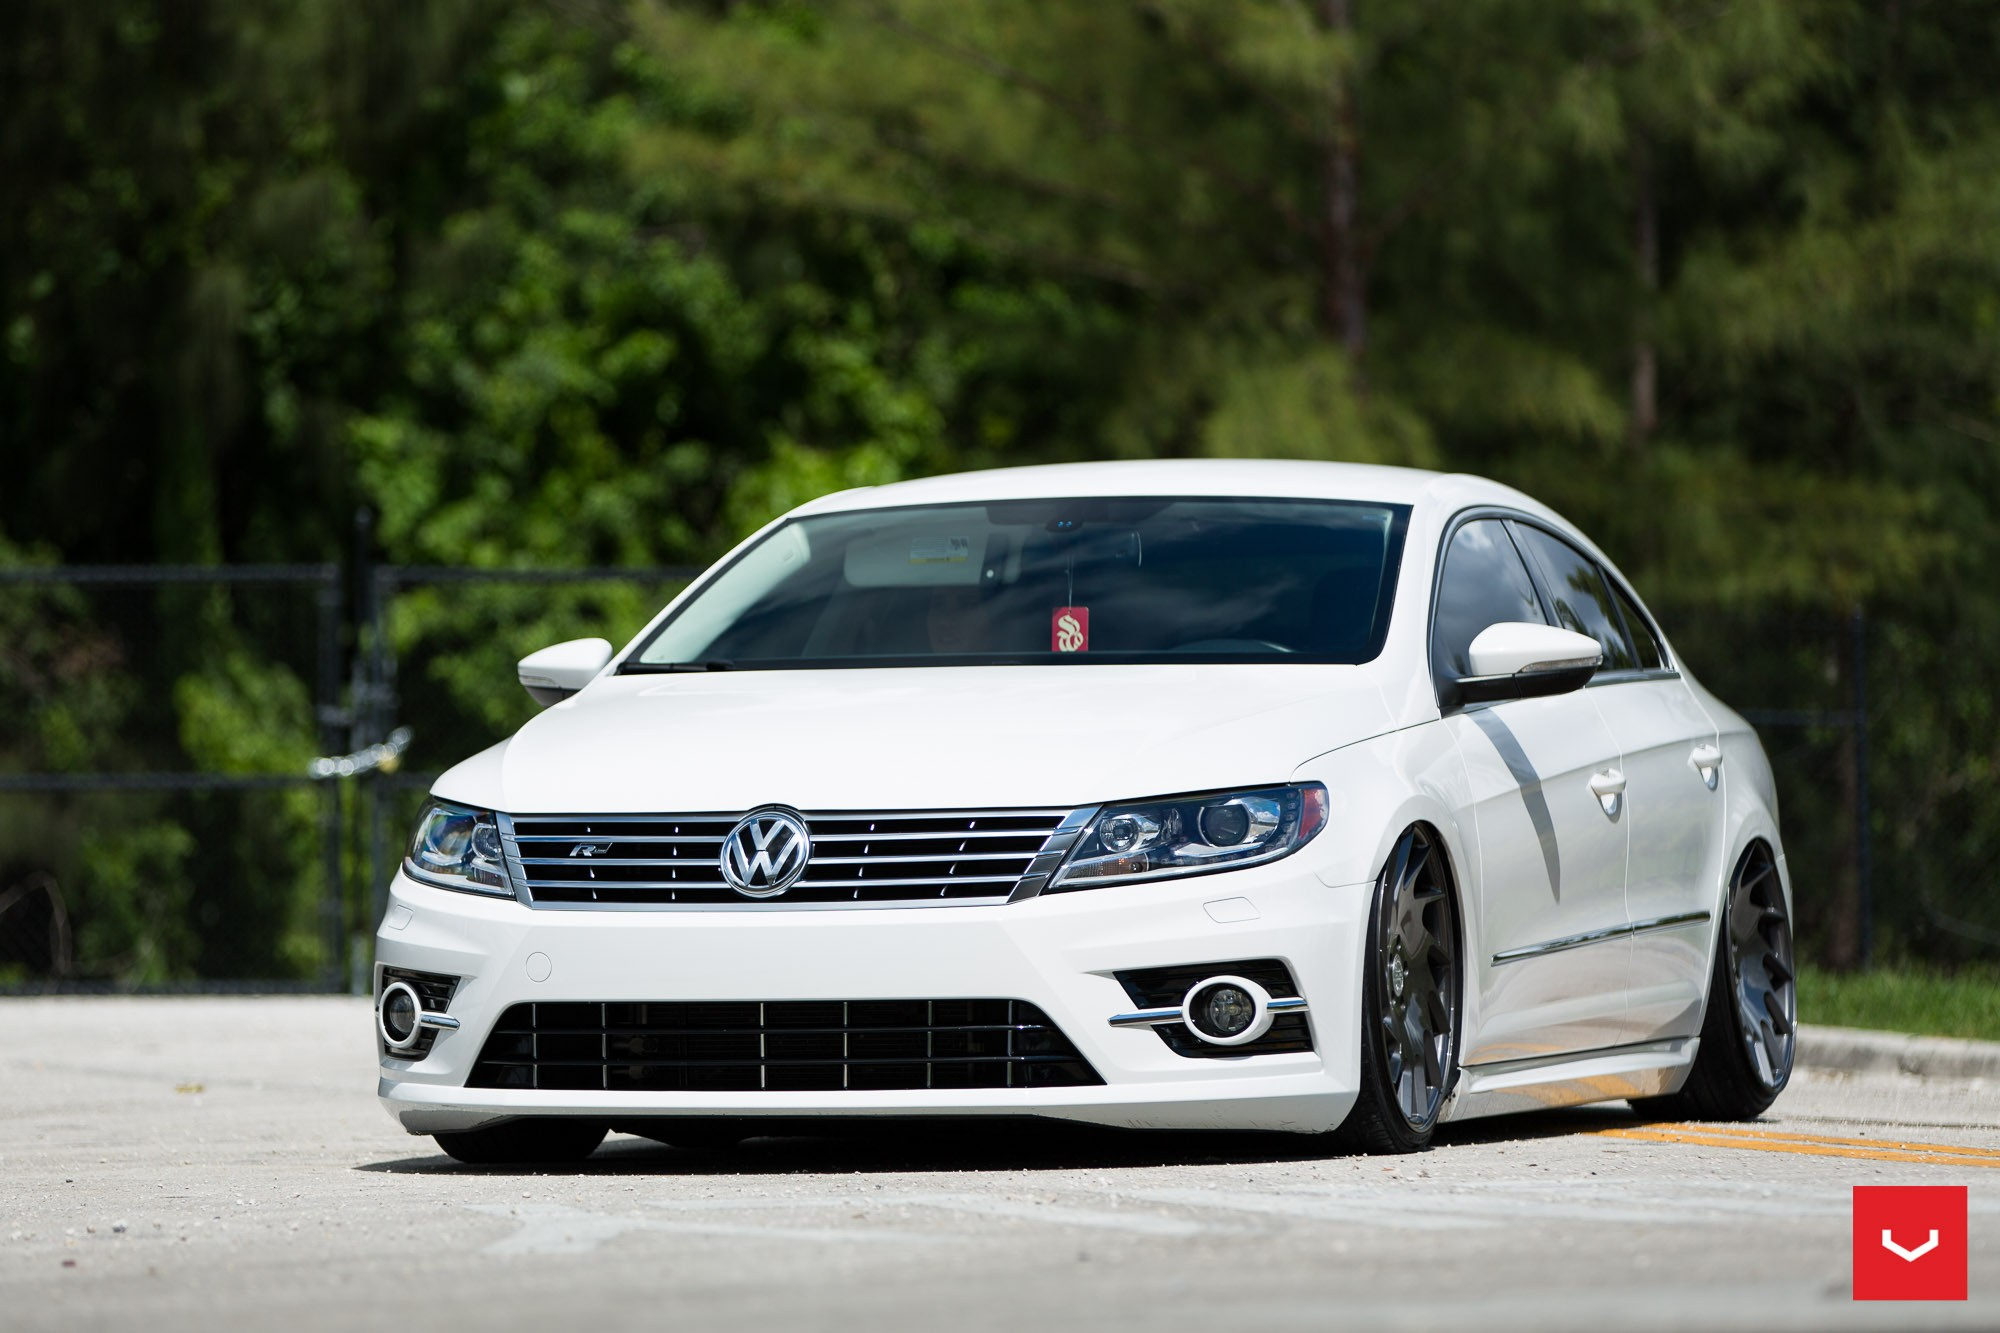 volkswagen cc r line gets stanced on vossen vle 1 wheels autoevolution. Black Bedroom Furniture Sets. Home Design Ideas